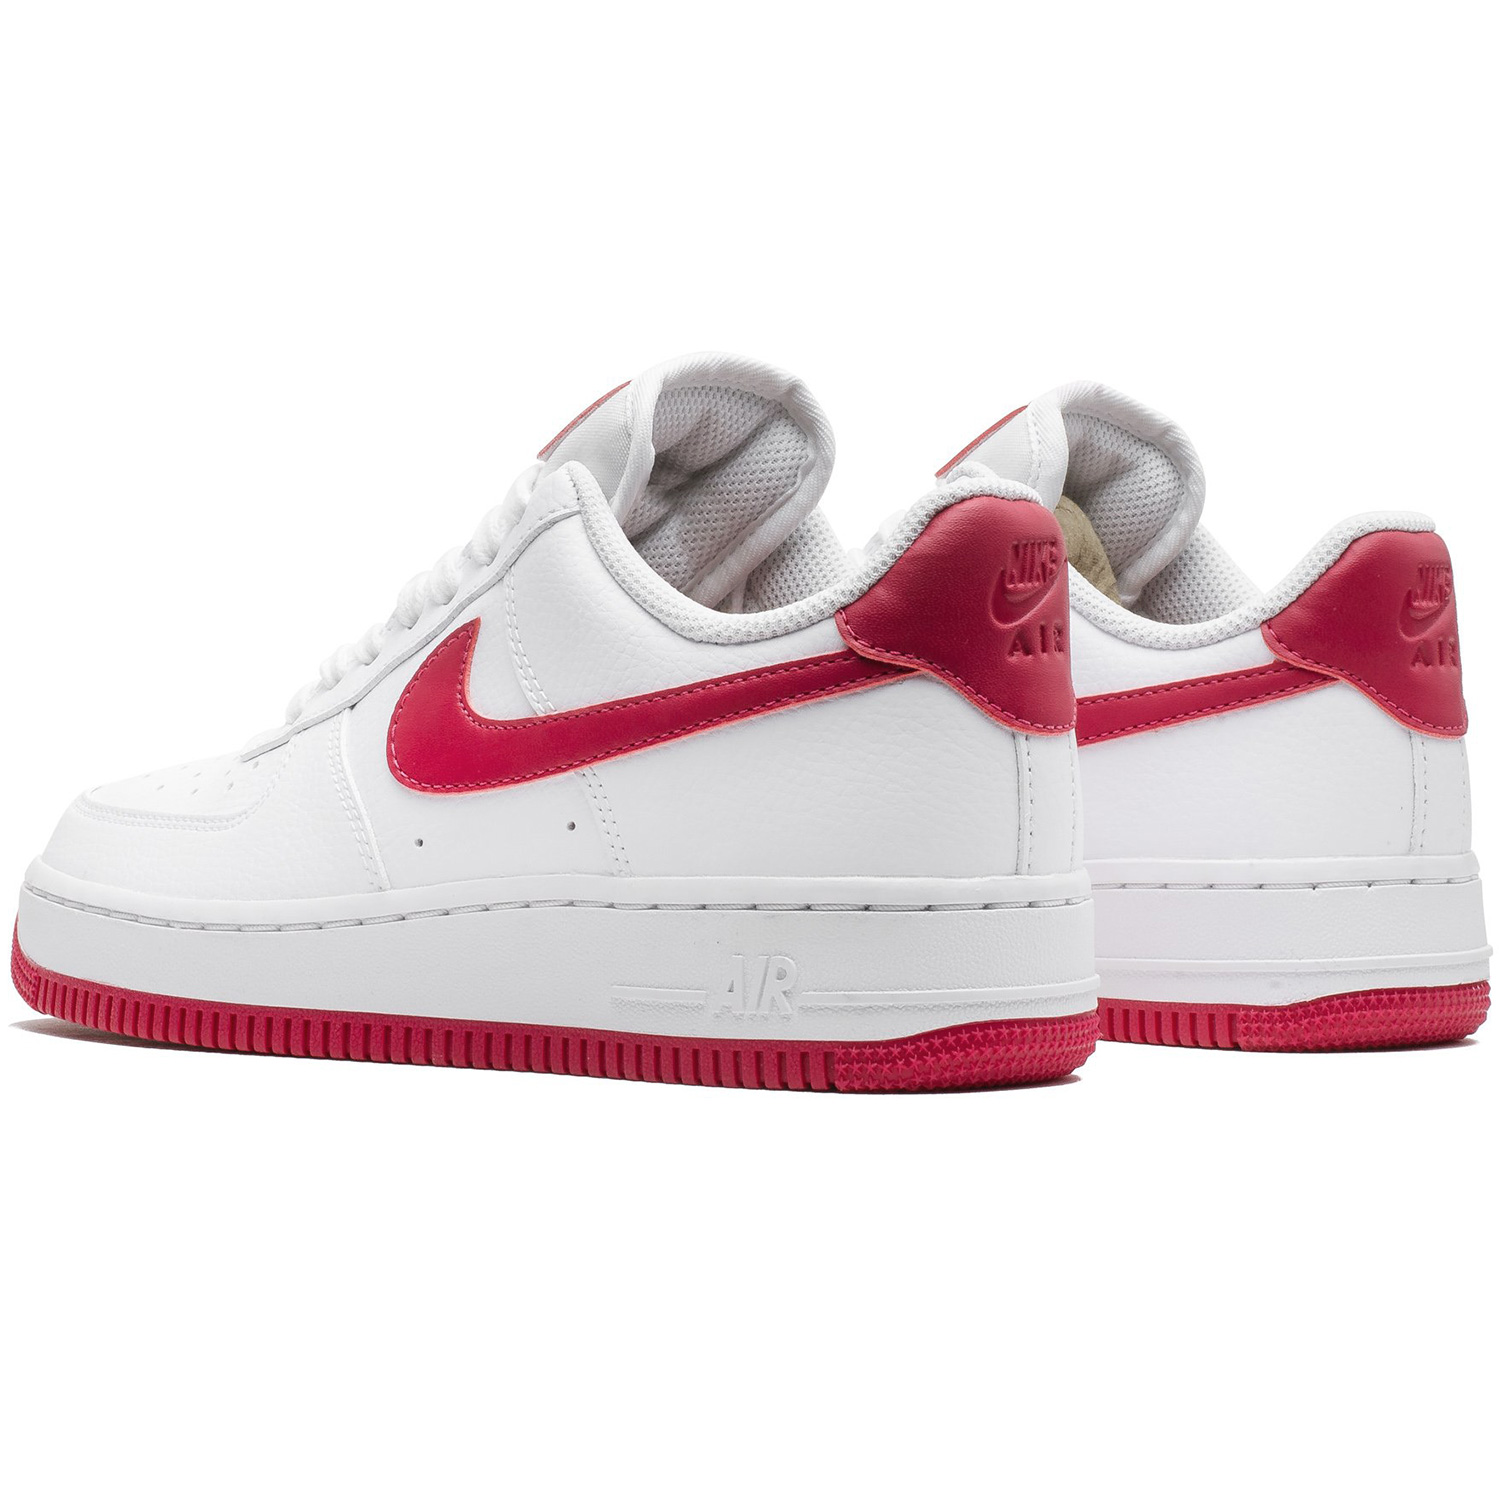 Groß Boutique Nike Frauen Air Force 1 07 LE Schwarz Cherry